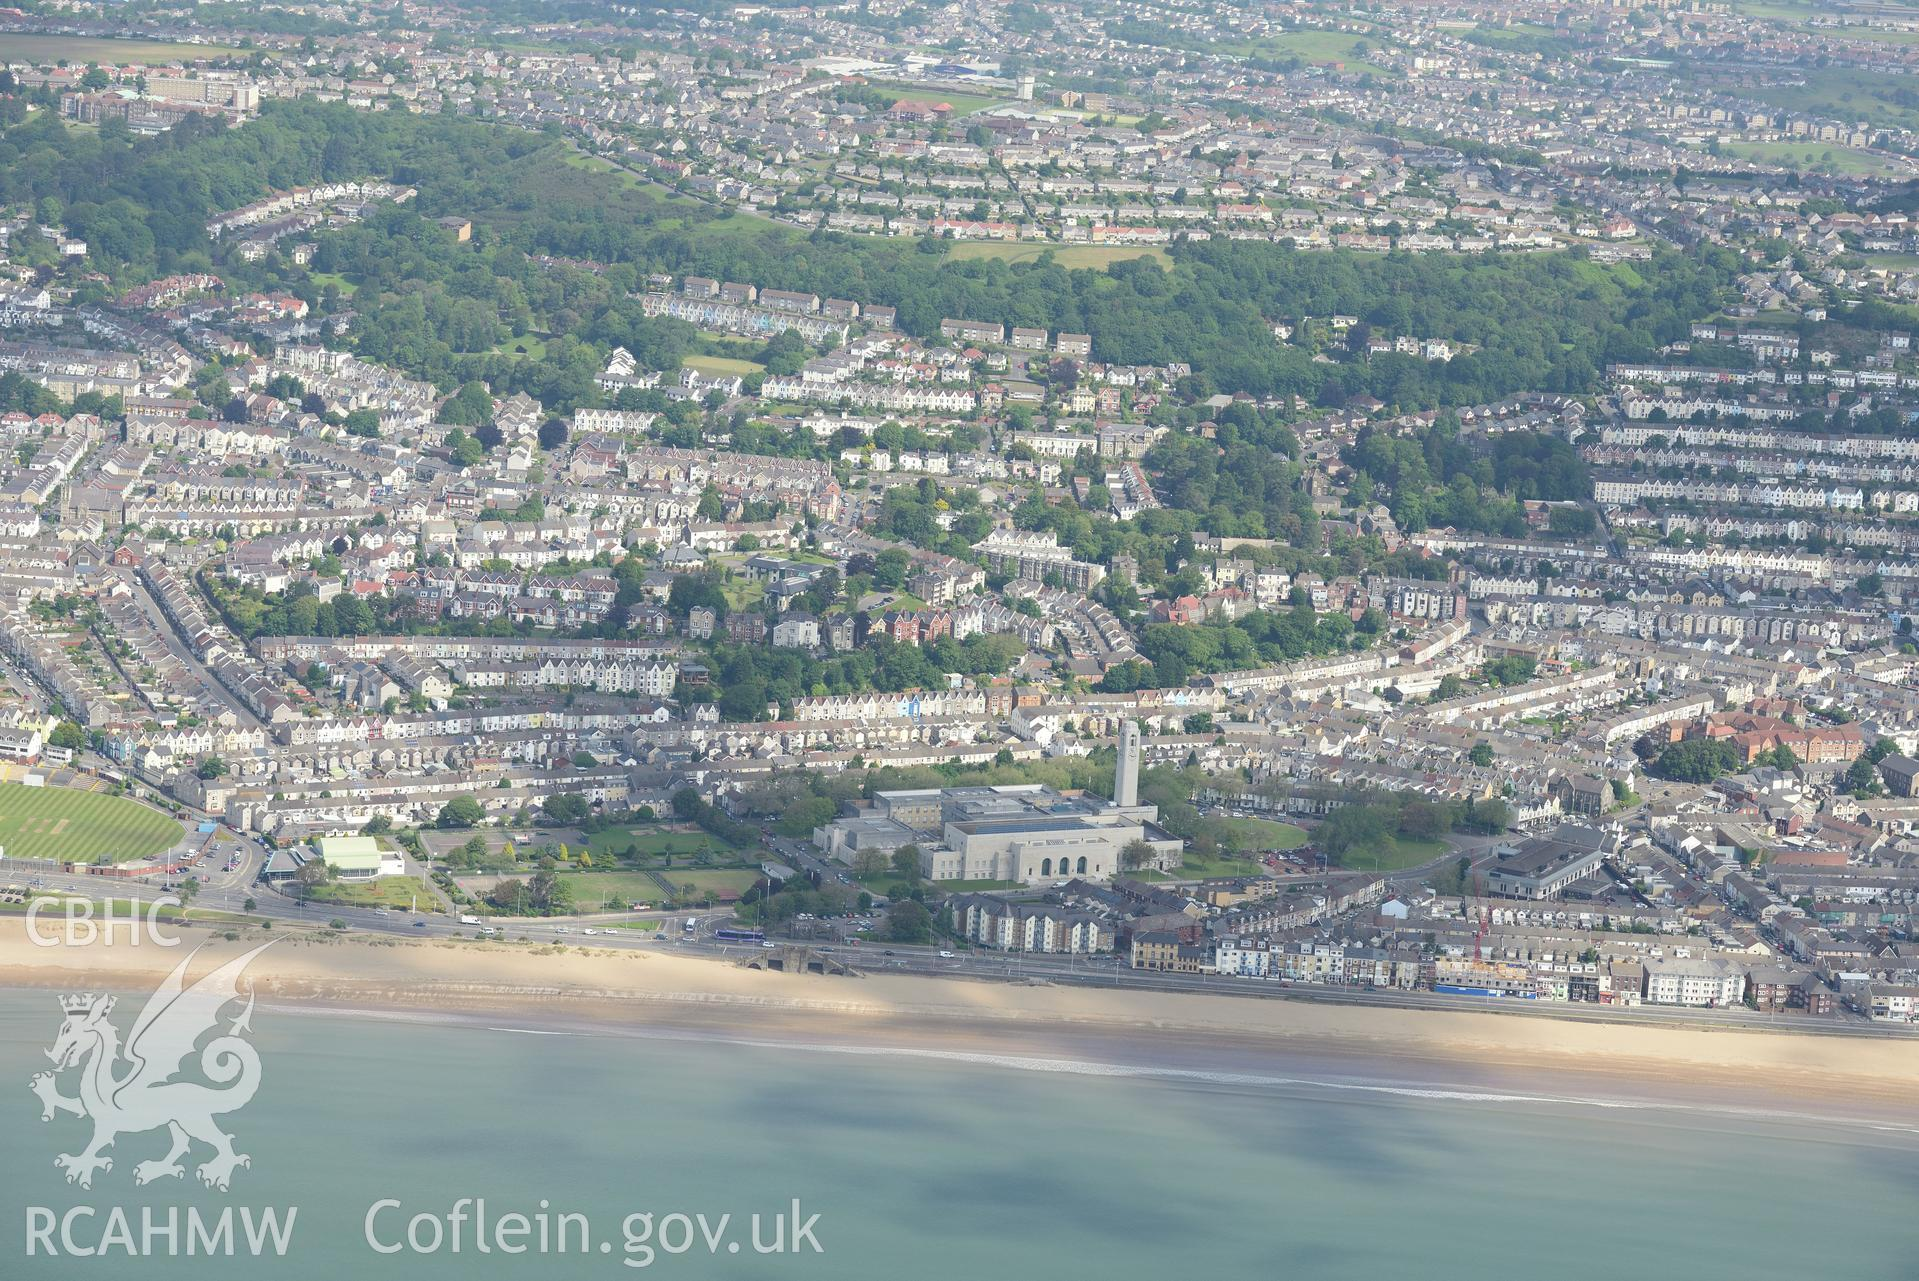 Guildhall, Victoria Park, Patti Pavilion and St. Helen's Cricket and Rugby Ground, taken from Swansea Bay. Oblique aerial photograph taken during the Royal Commission's programme of archaeological aerial reconnaissance by Toby Driver on 19th June 2015.